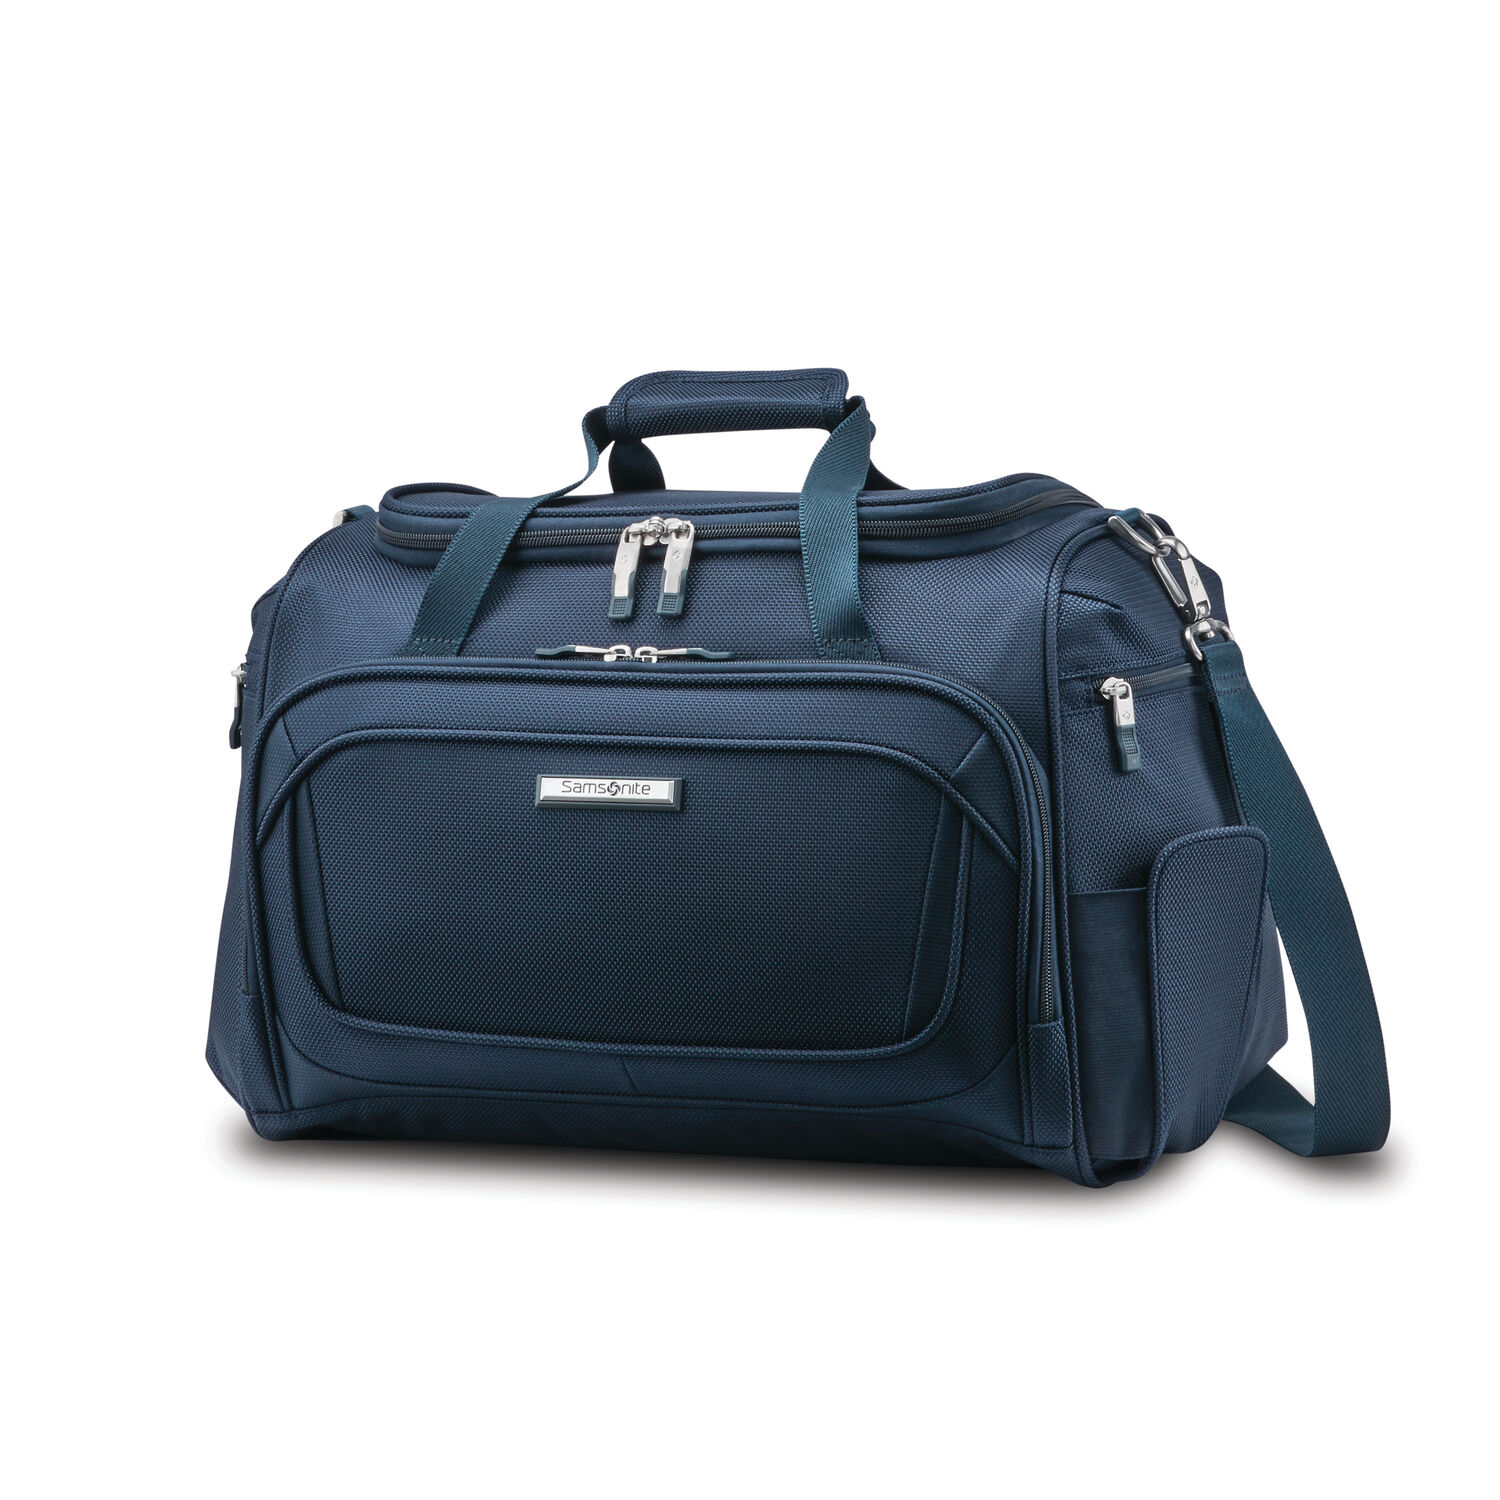 Samsonite Silhouette 16 Travel Tote in the color Evening Teal.